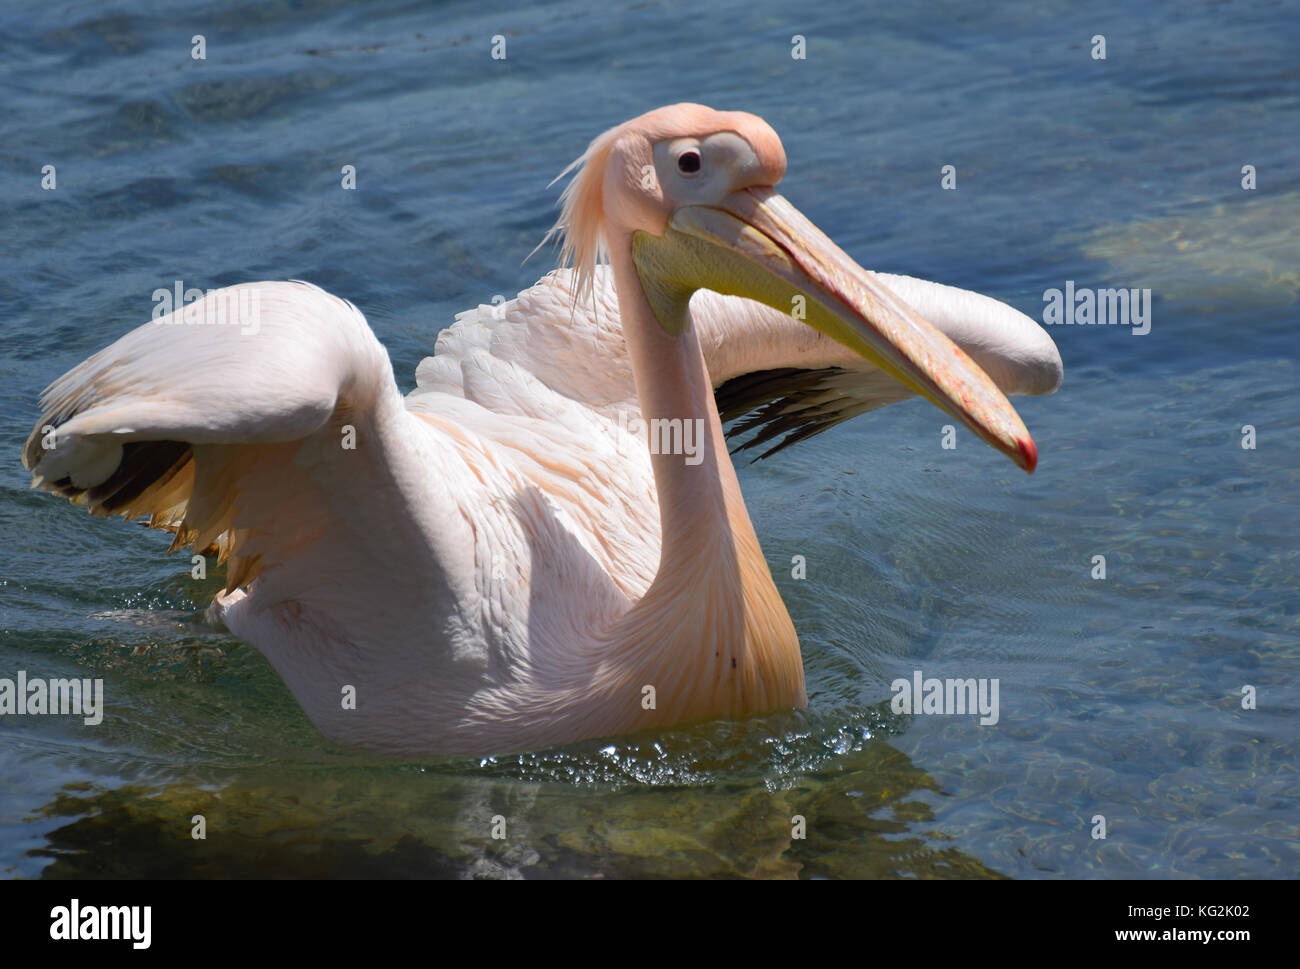 A Pelican in Cyprus by the dock Stock Photo